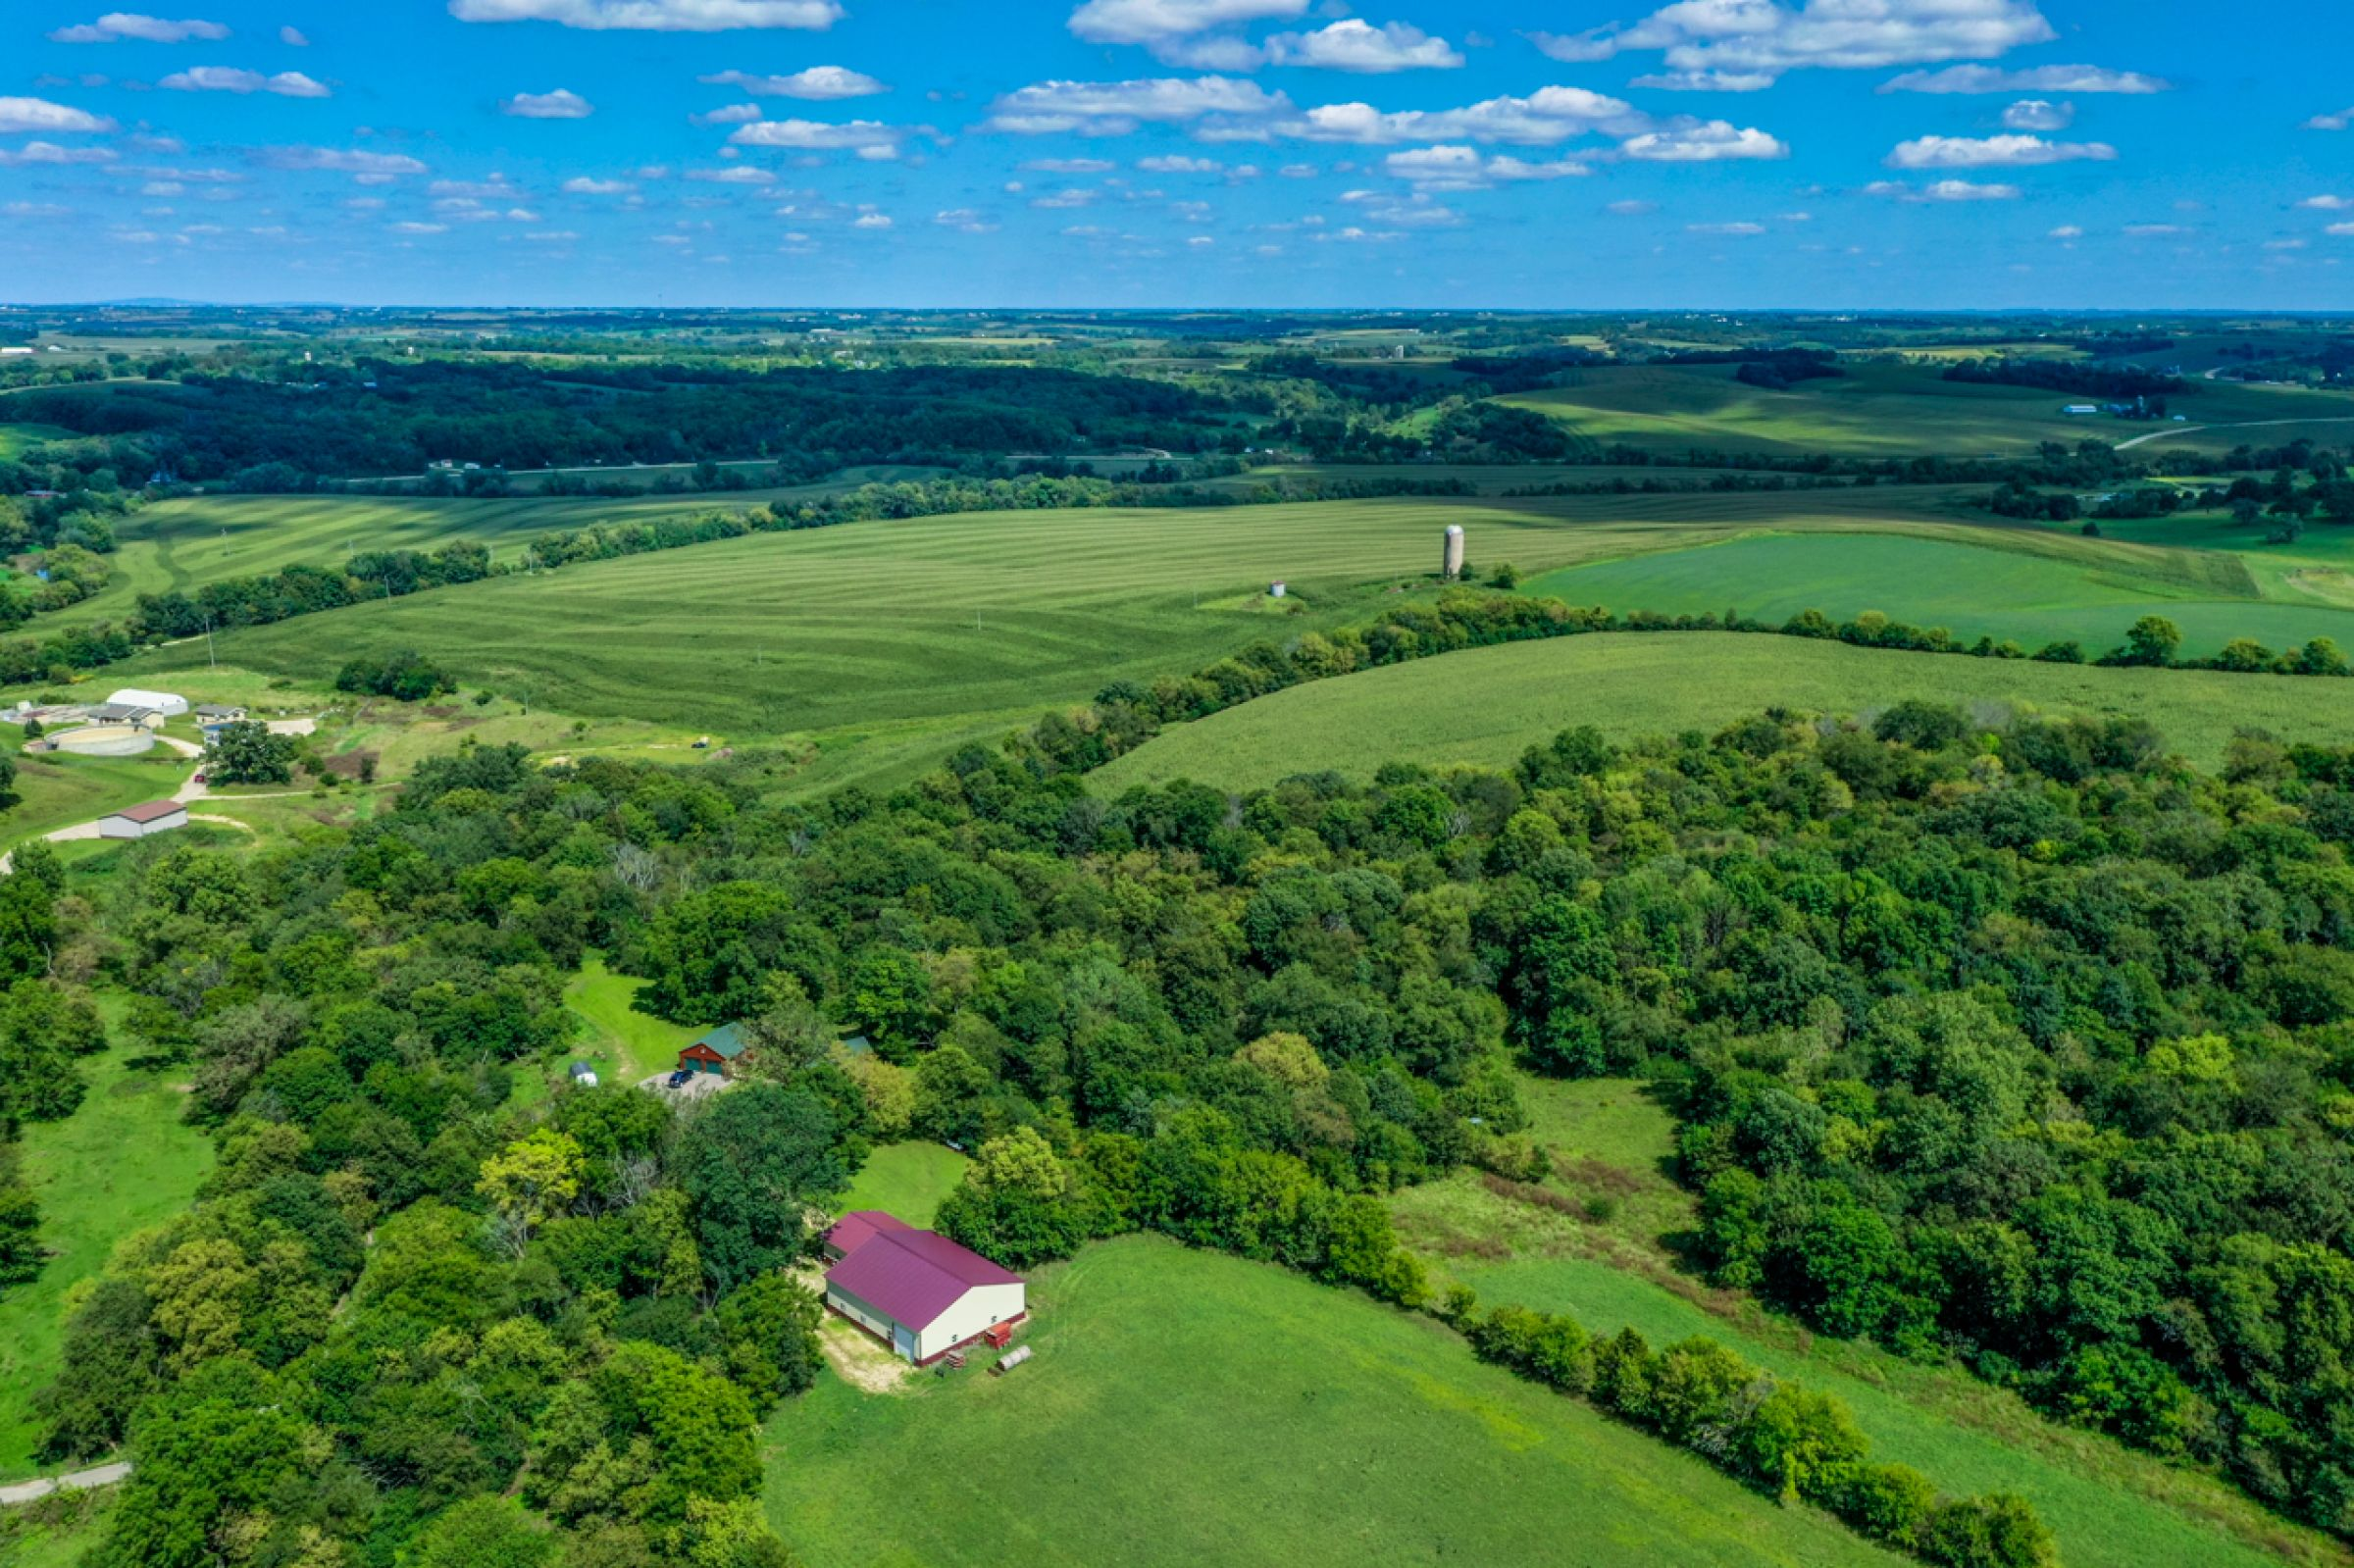 land-lafayette-county-wisconsin-120-acres-listing-number-15729-19-2021-09-03-204848.jpg